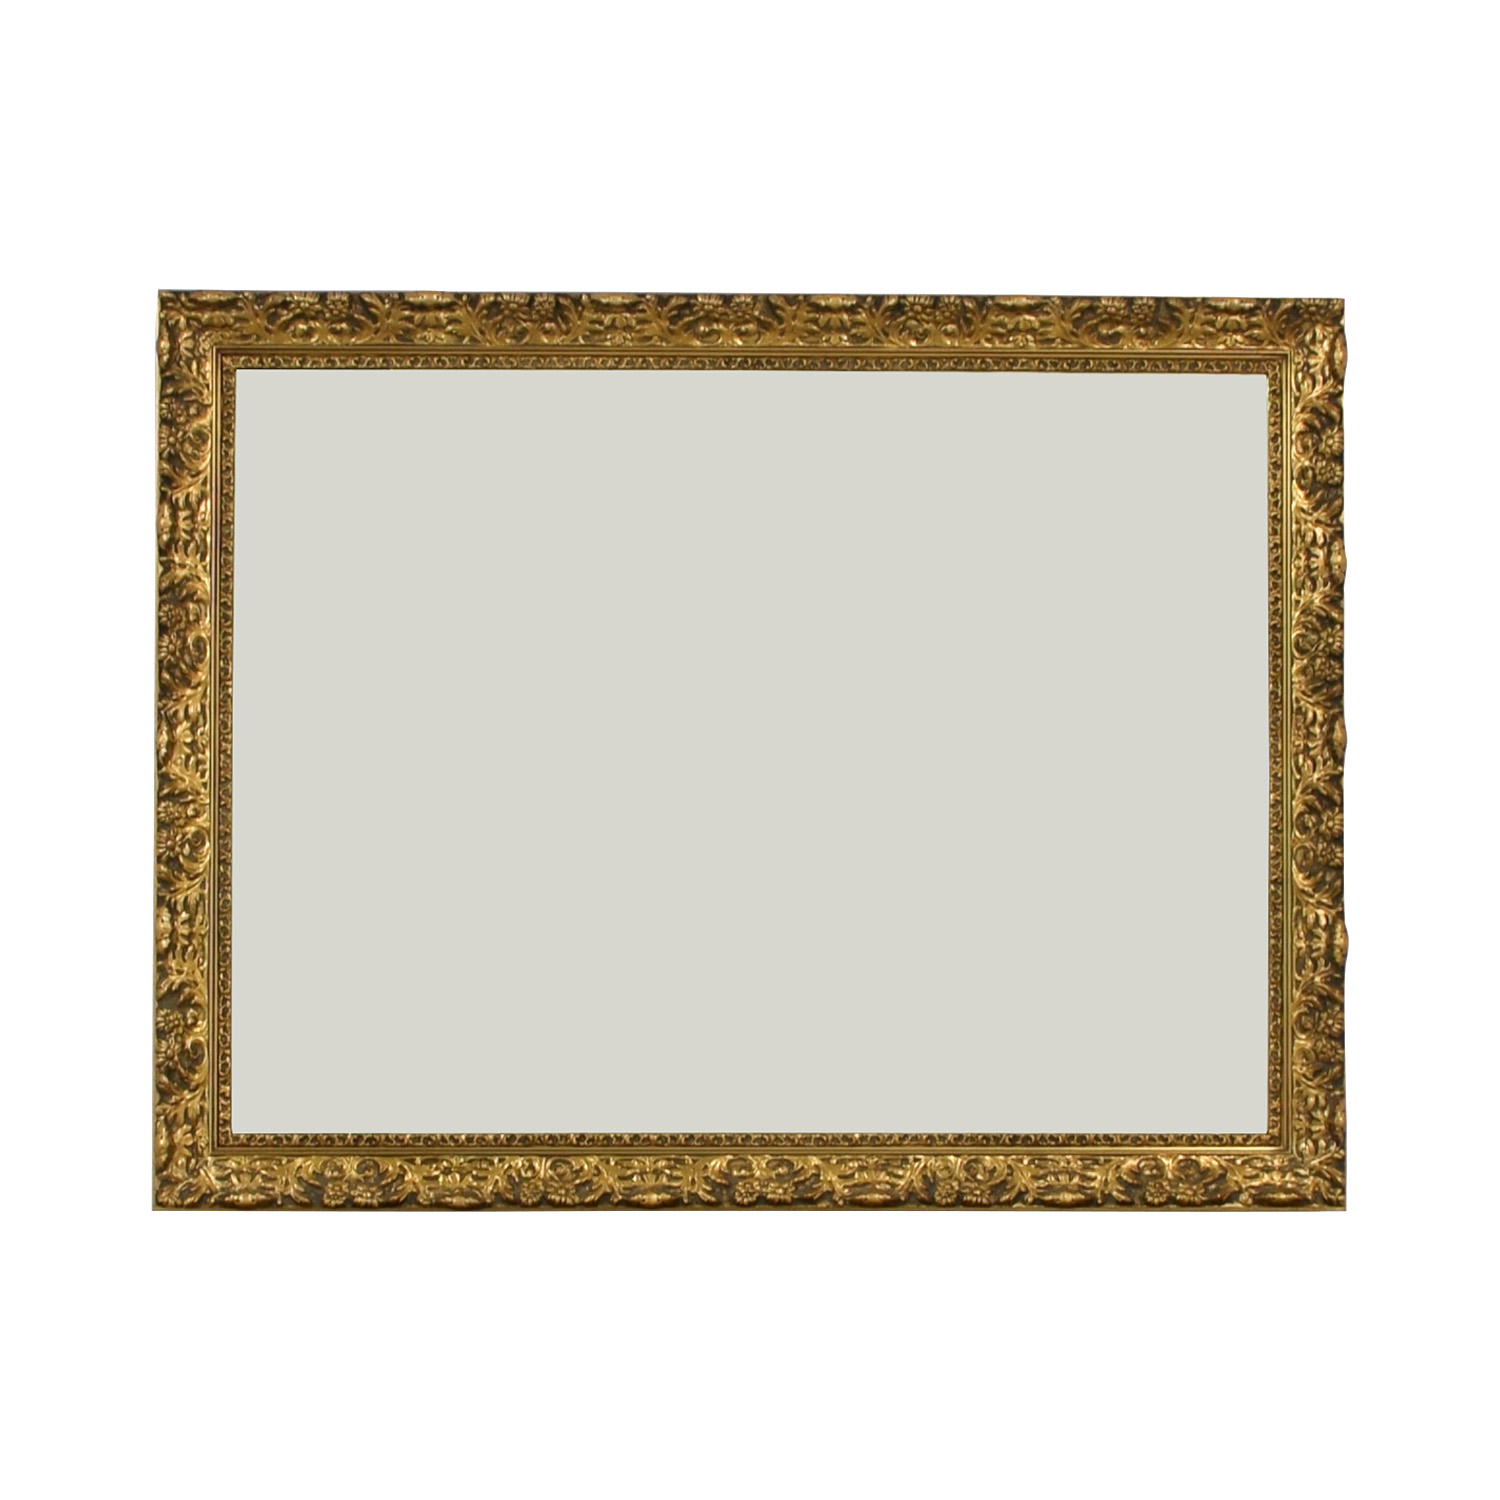 Sterling Framing Gold Mirror used